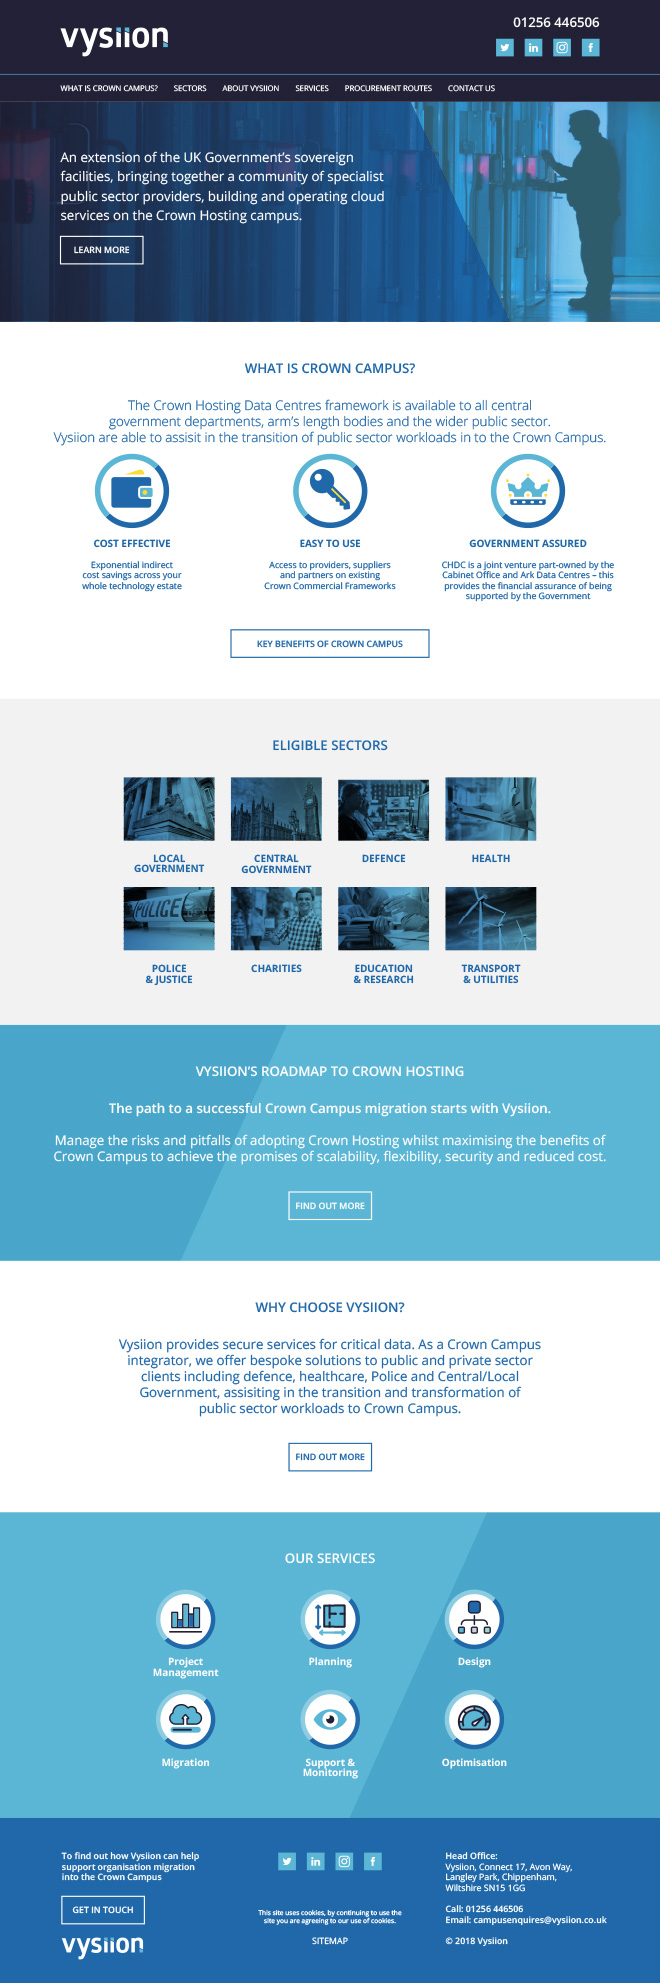 Vysiion Crown Campus home page design layout